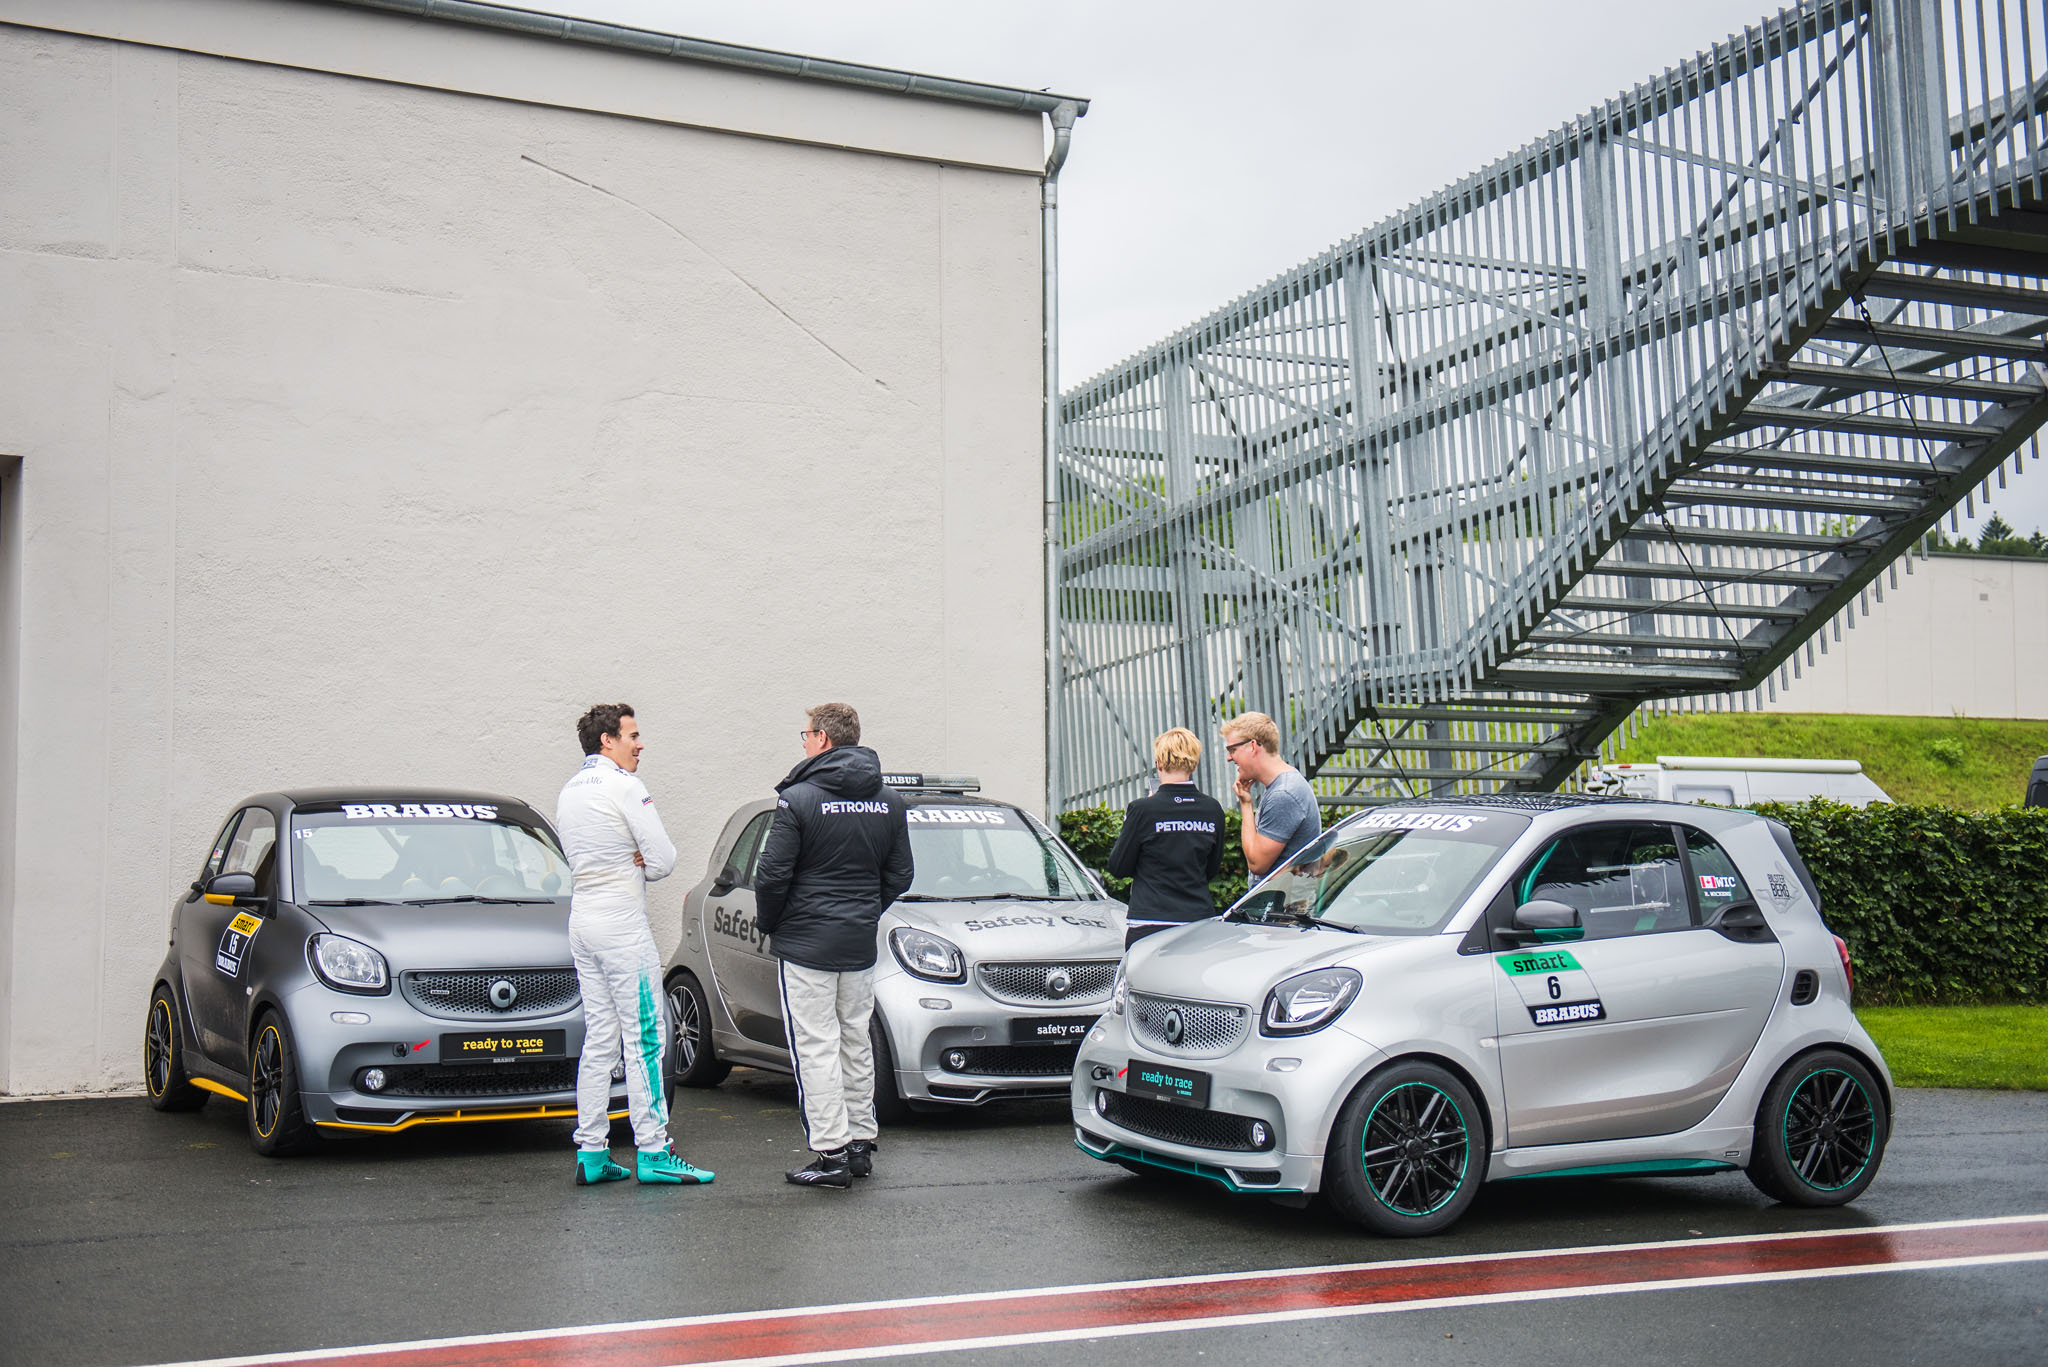 Smart Car Safety >> Brabus Renner Im Detail Smart Fortwo Ready To Race